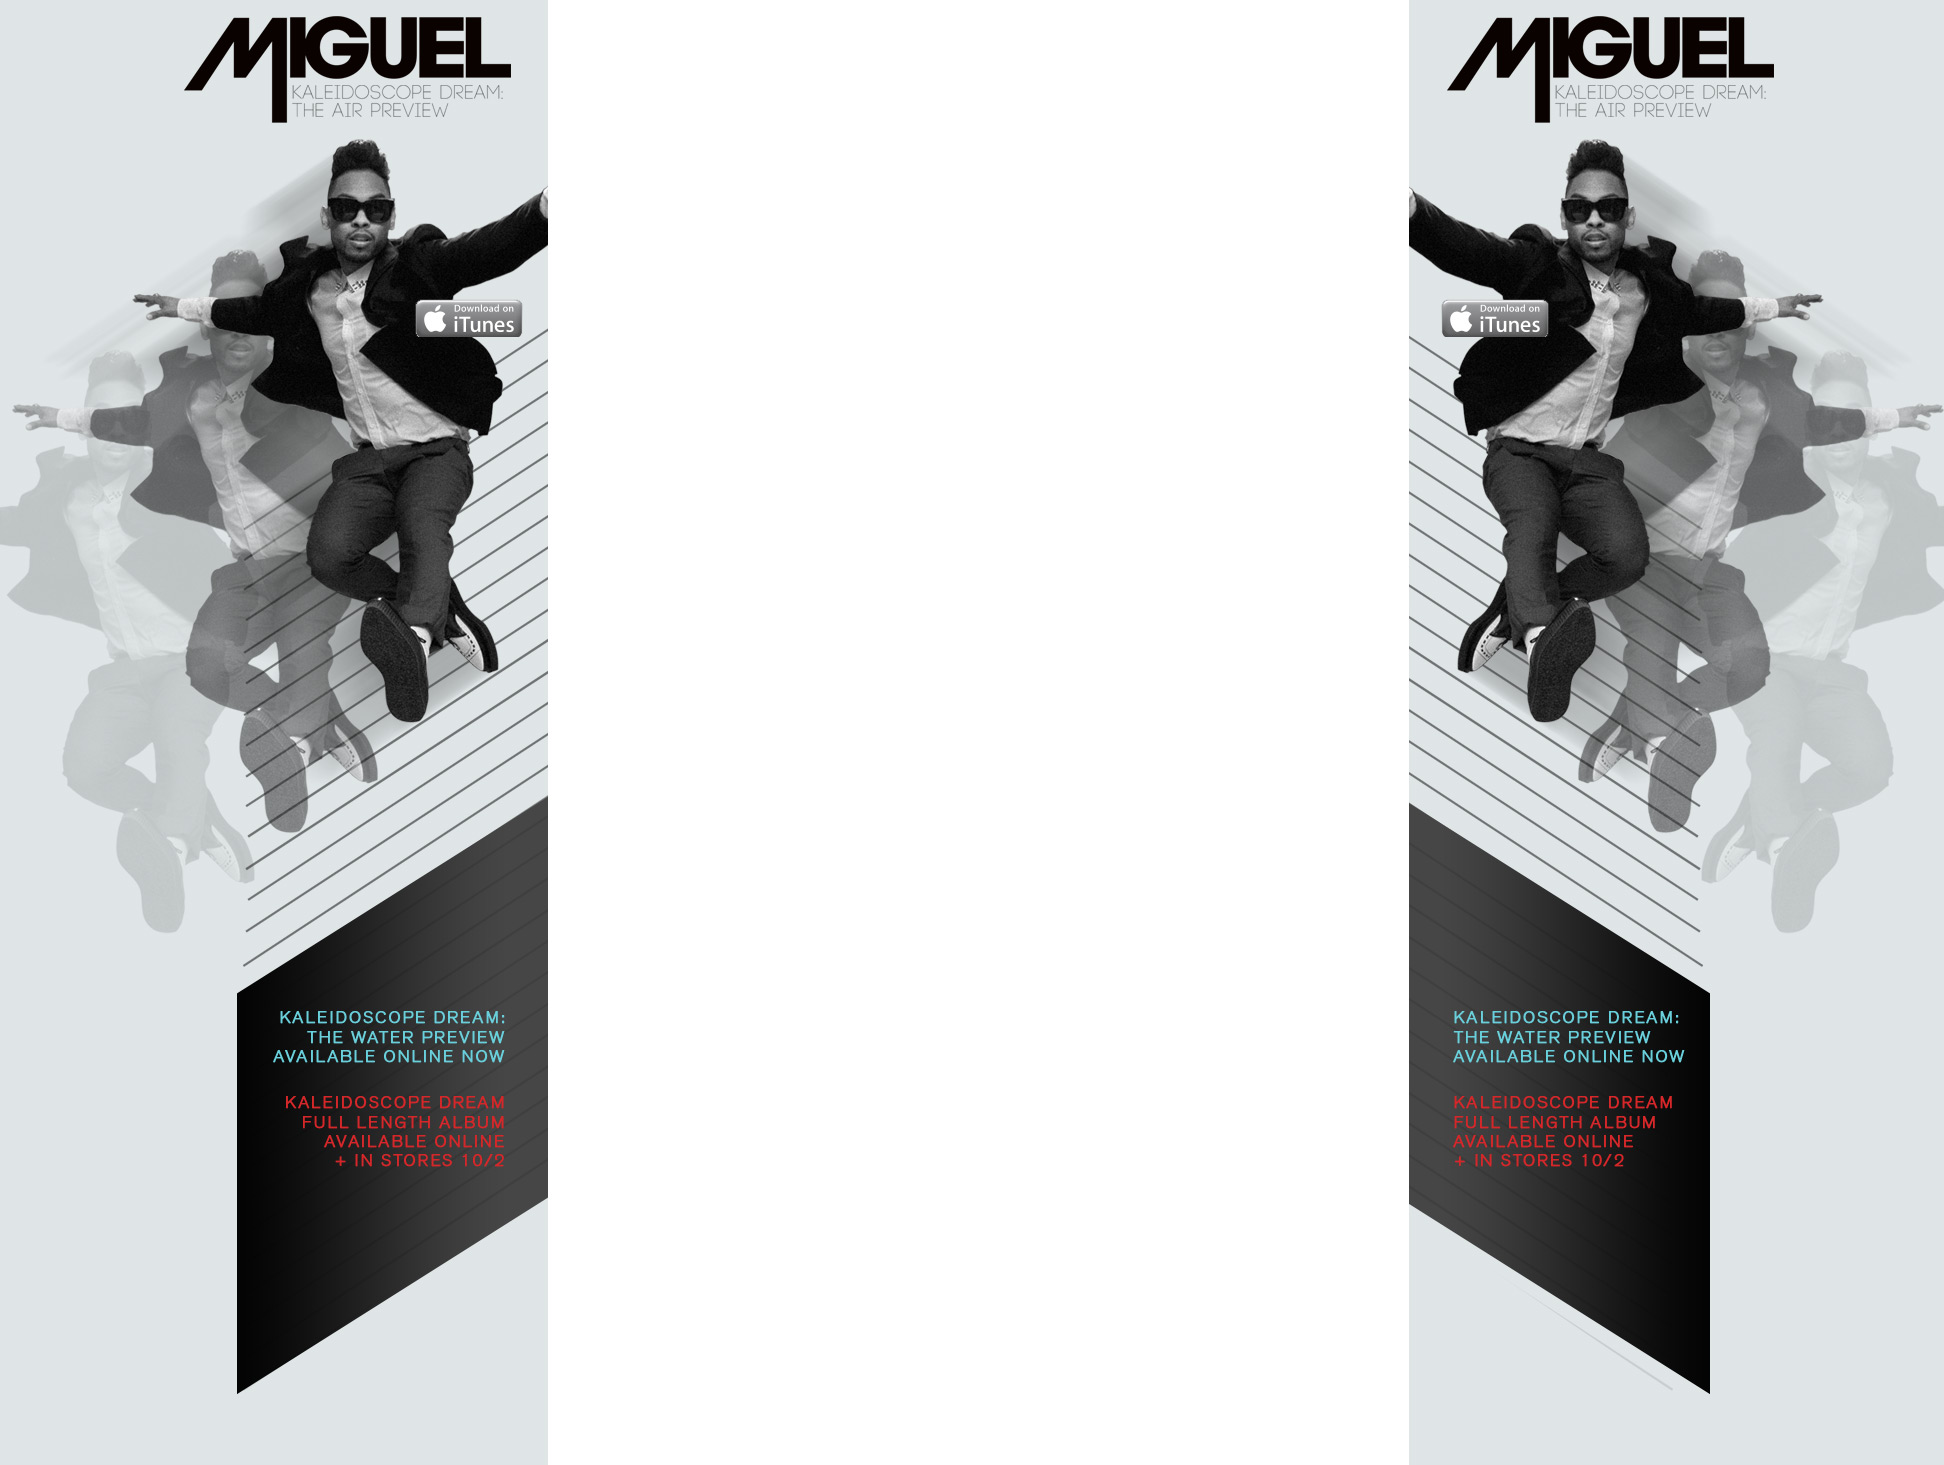 miguel_takeover_ready1.jpg